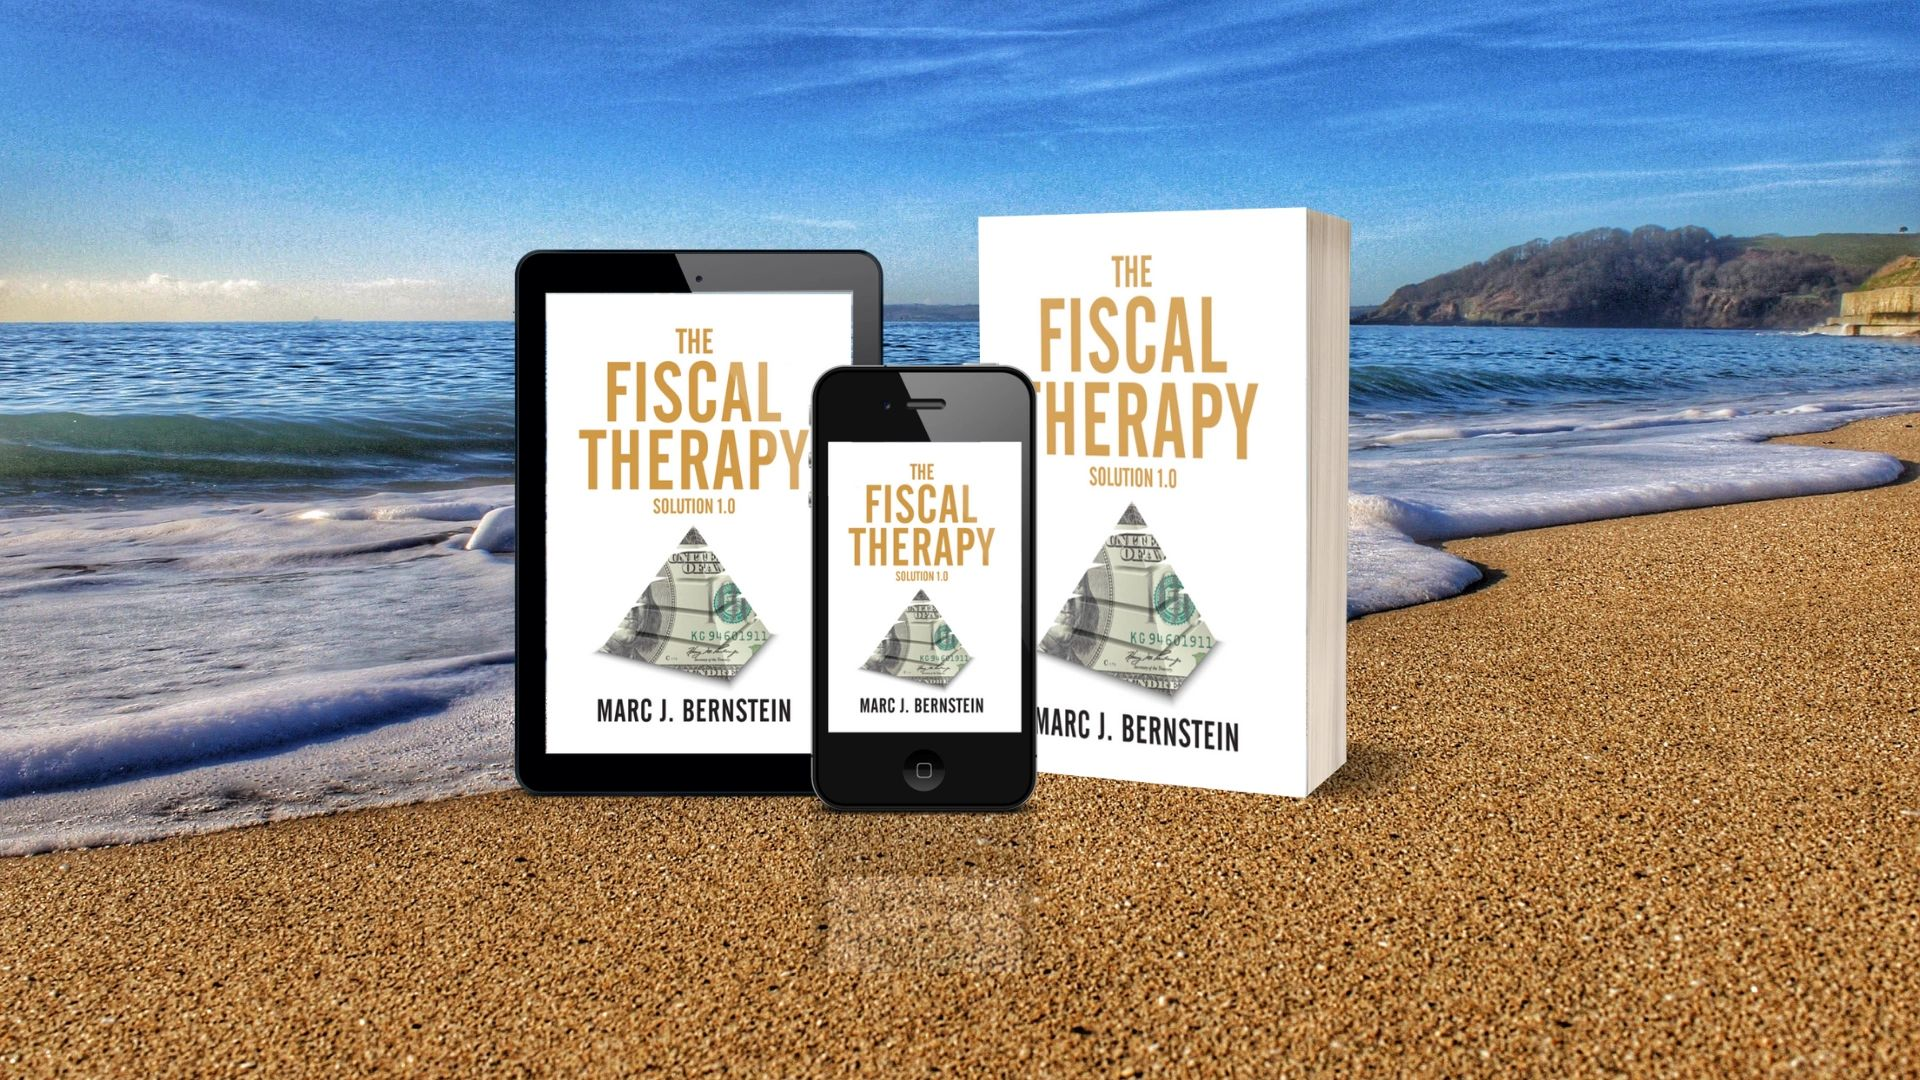 fiscal therapy solution marc j bernstein financial health fiscal therapy finances wealth planning